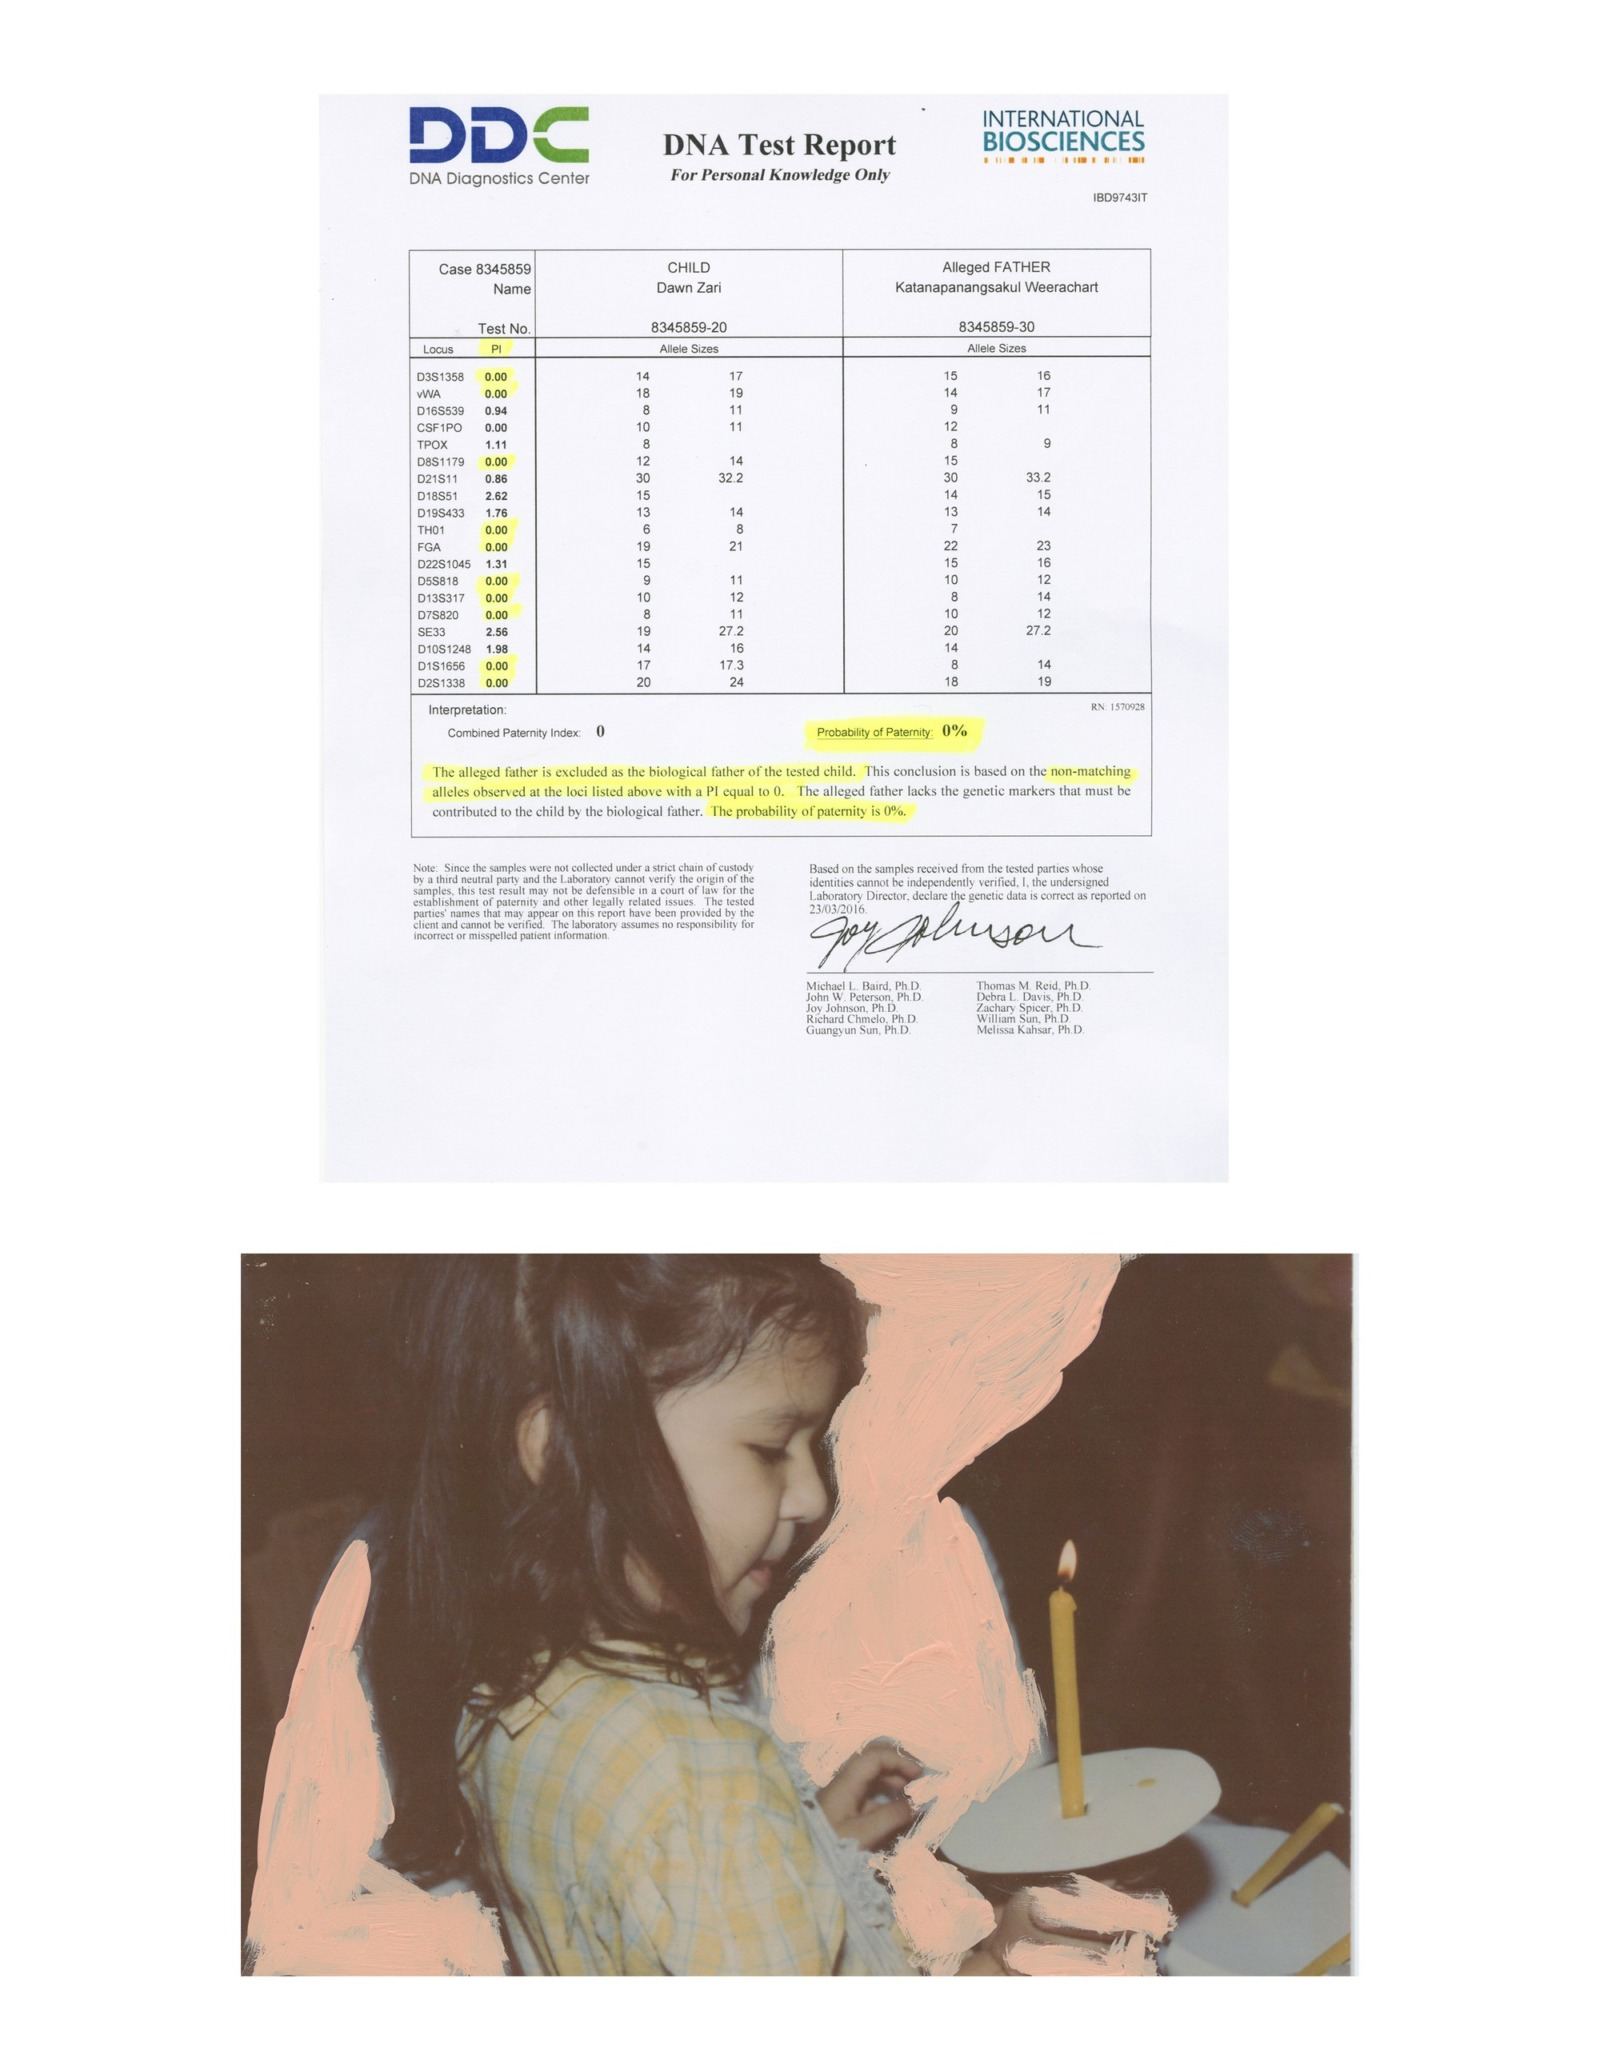 A scan of a negative DNA test above the edited photograph of a child holding a candle.